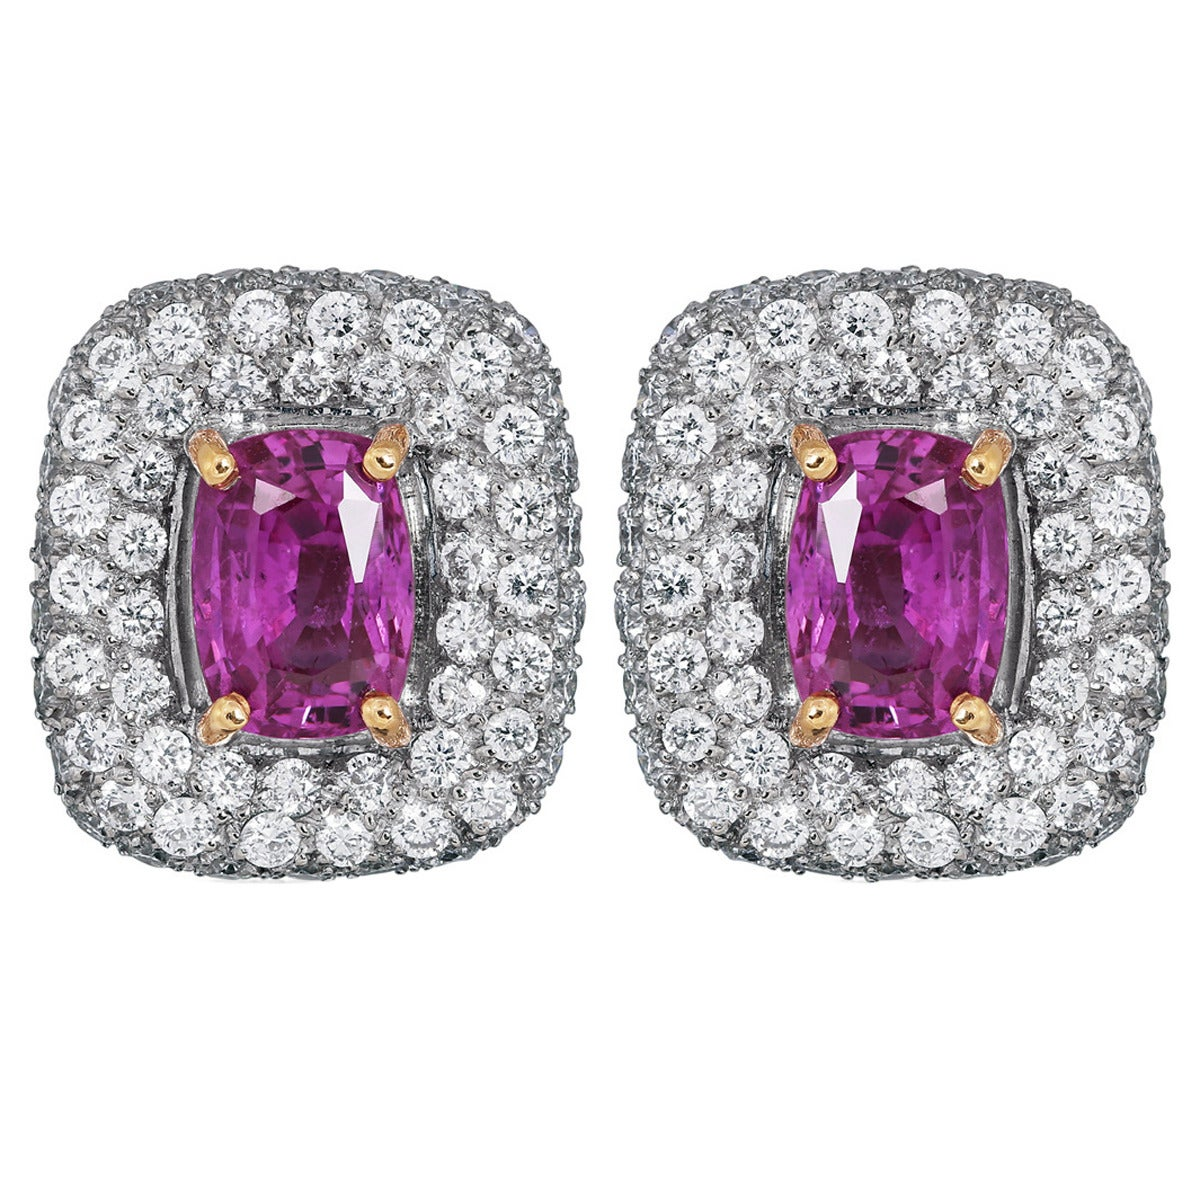 5.37 Carat Pink Sapphire and Diamond Earrings